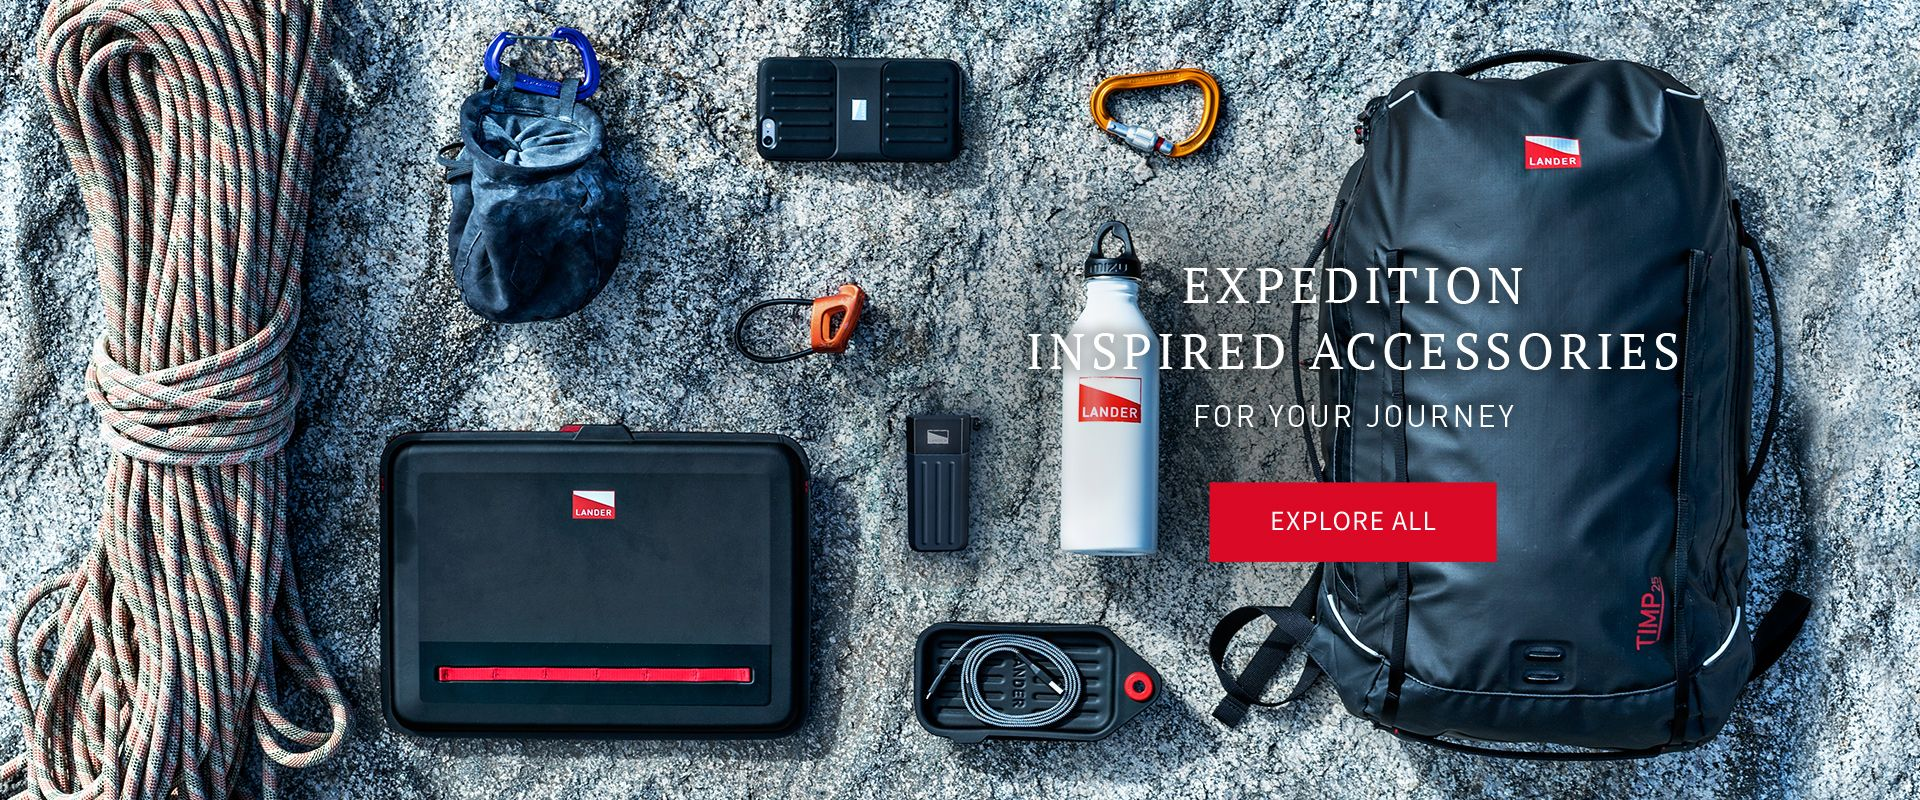 Expedition Inspired Phone Cases and Accessories LANDER